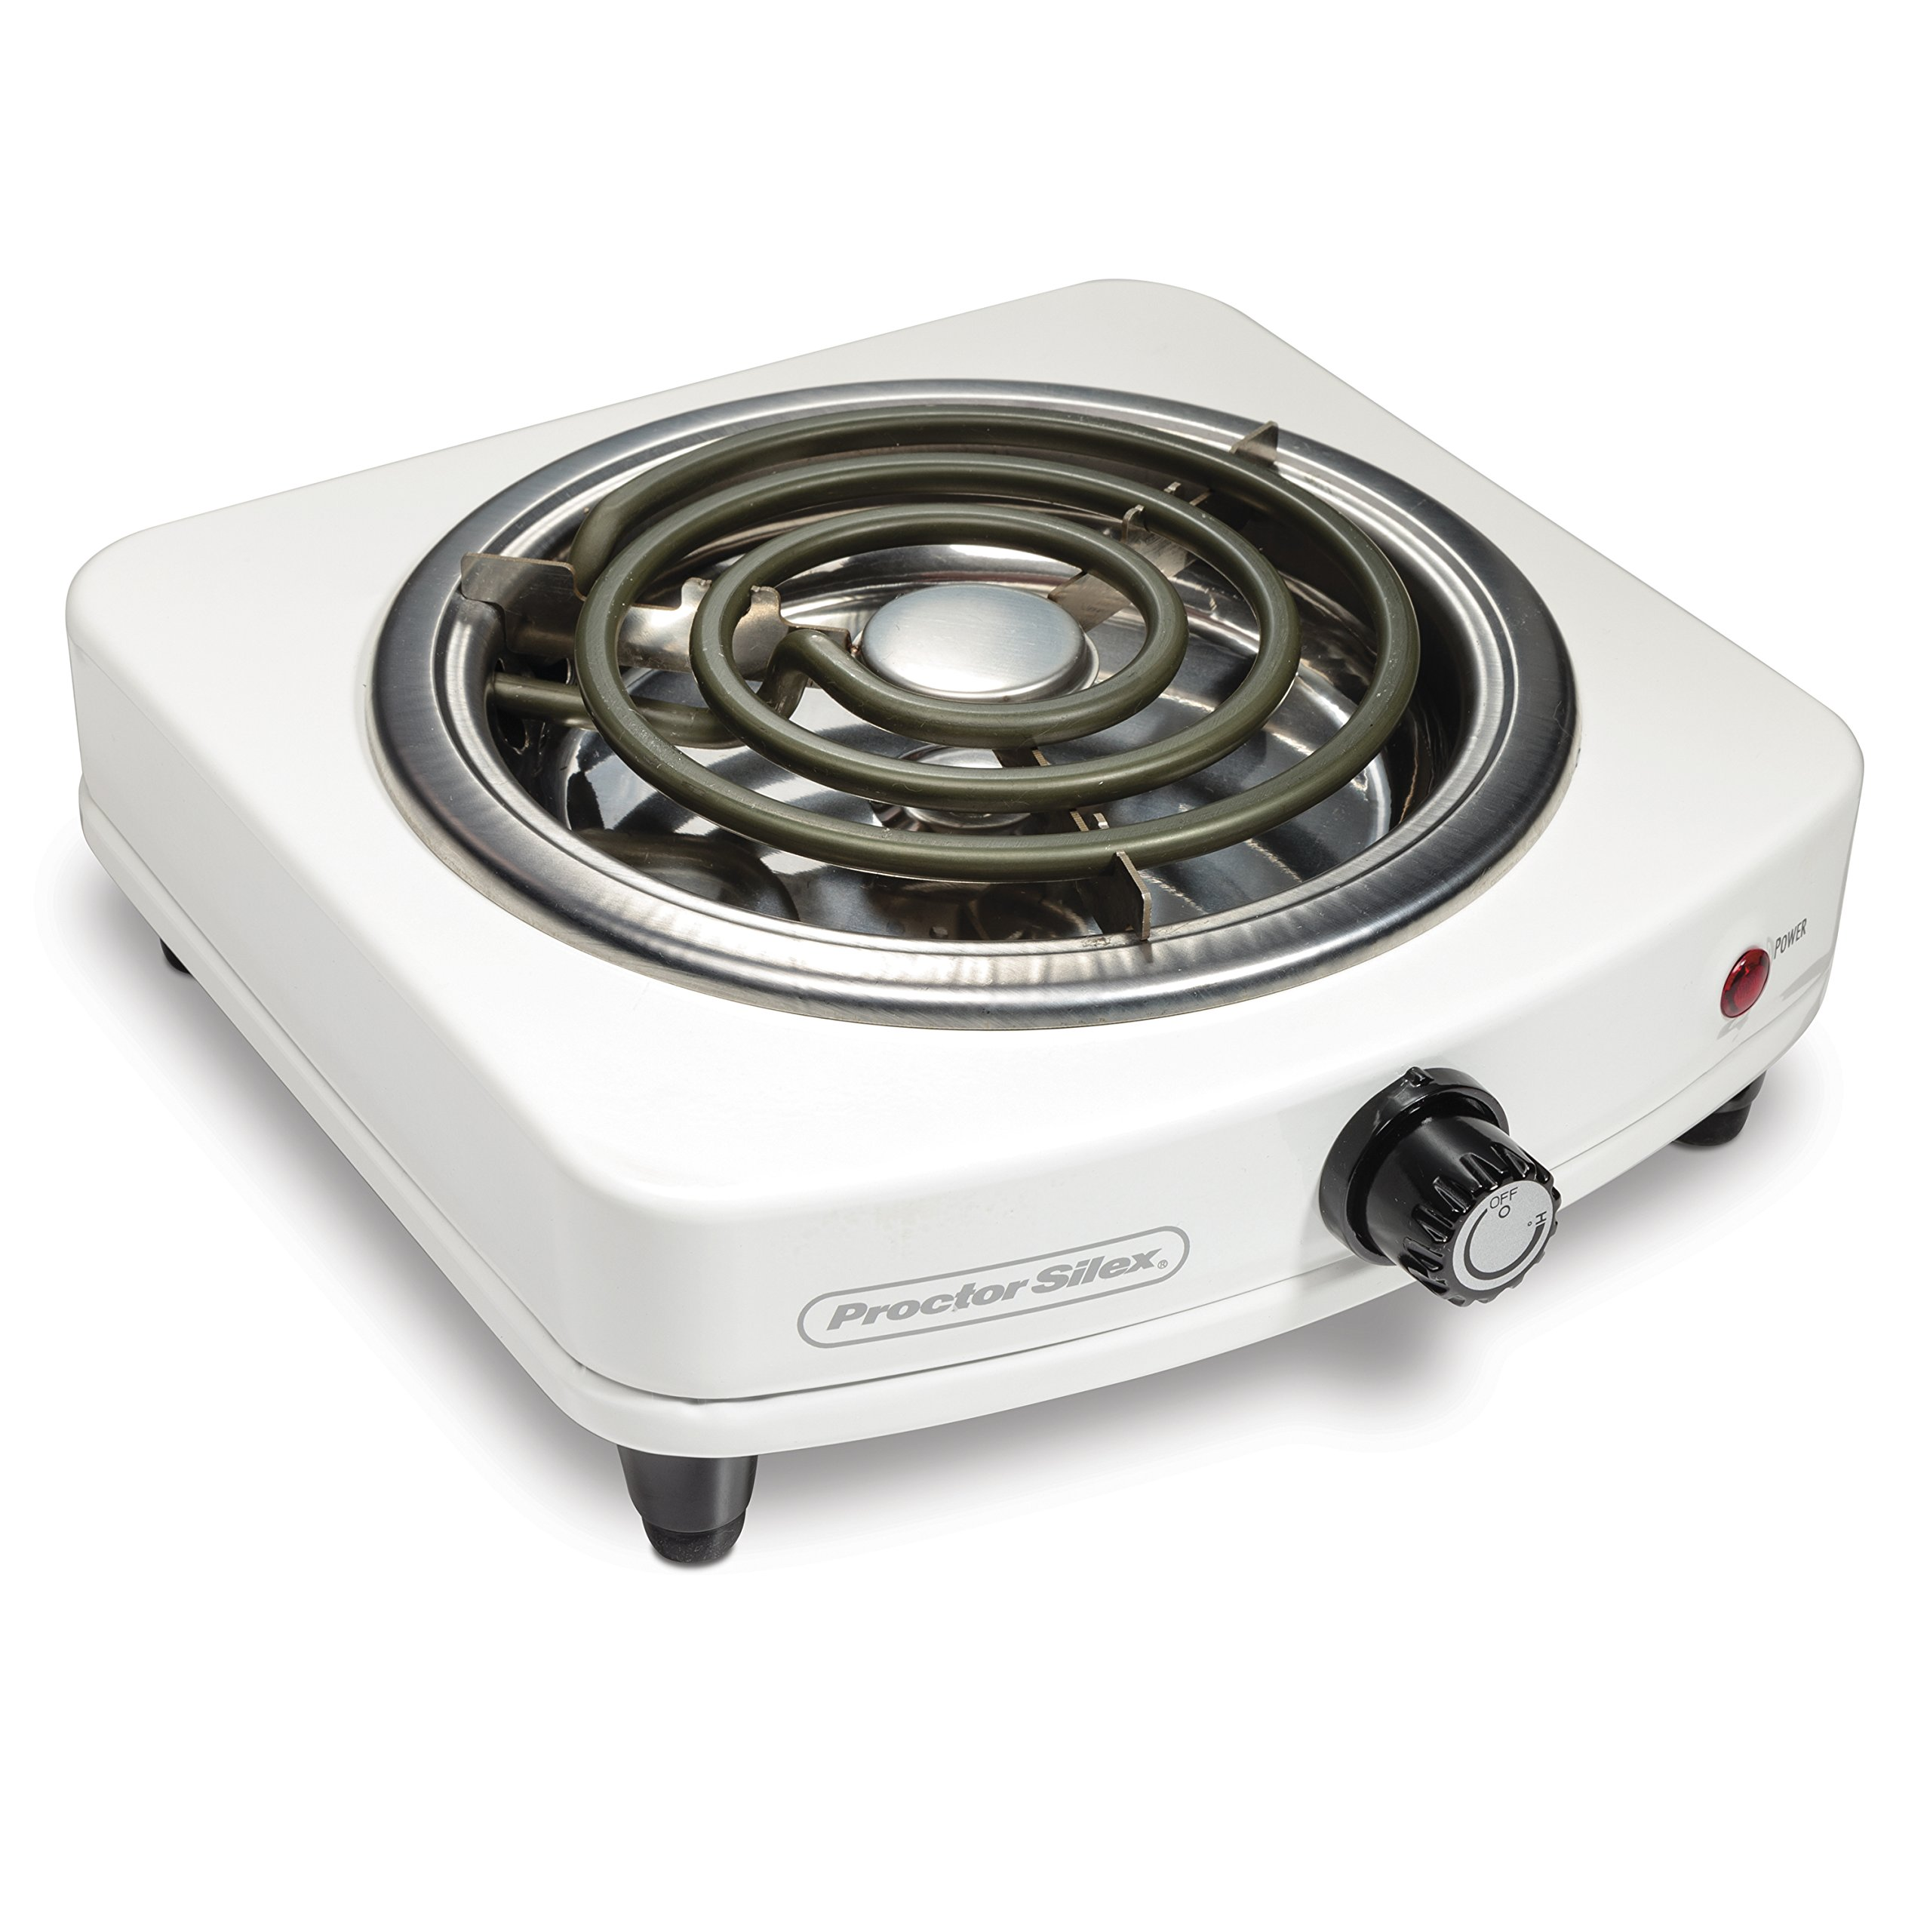 Proctor Silex 34103 Electric Single Burner, Compact and Portable, Adjustable Temperature Hot Plate, White & Stainless by Proctor Silex